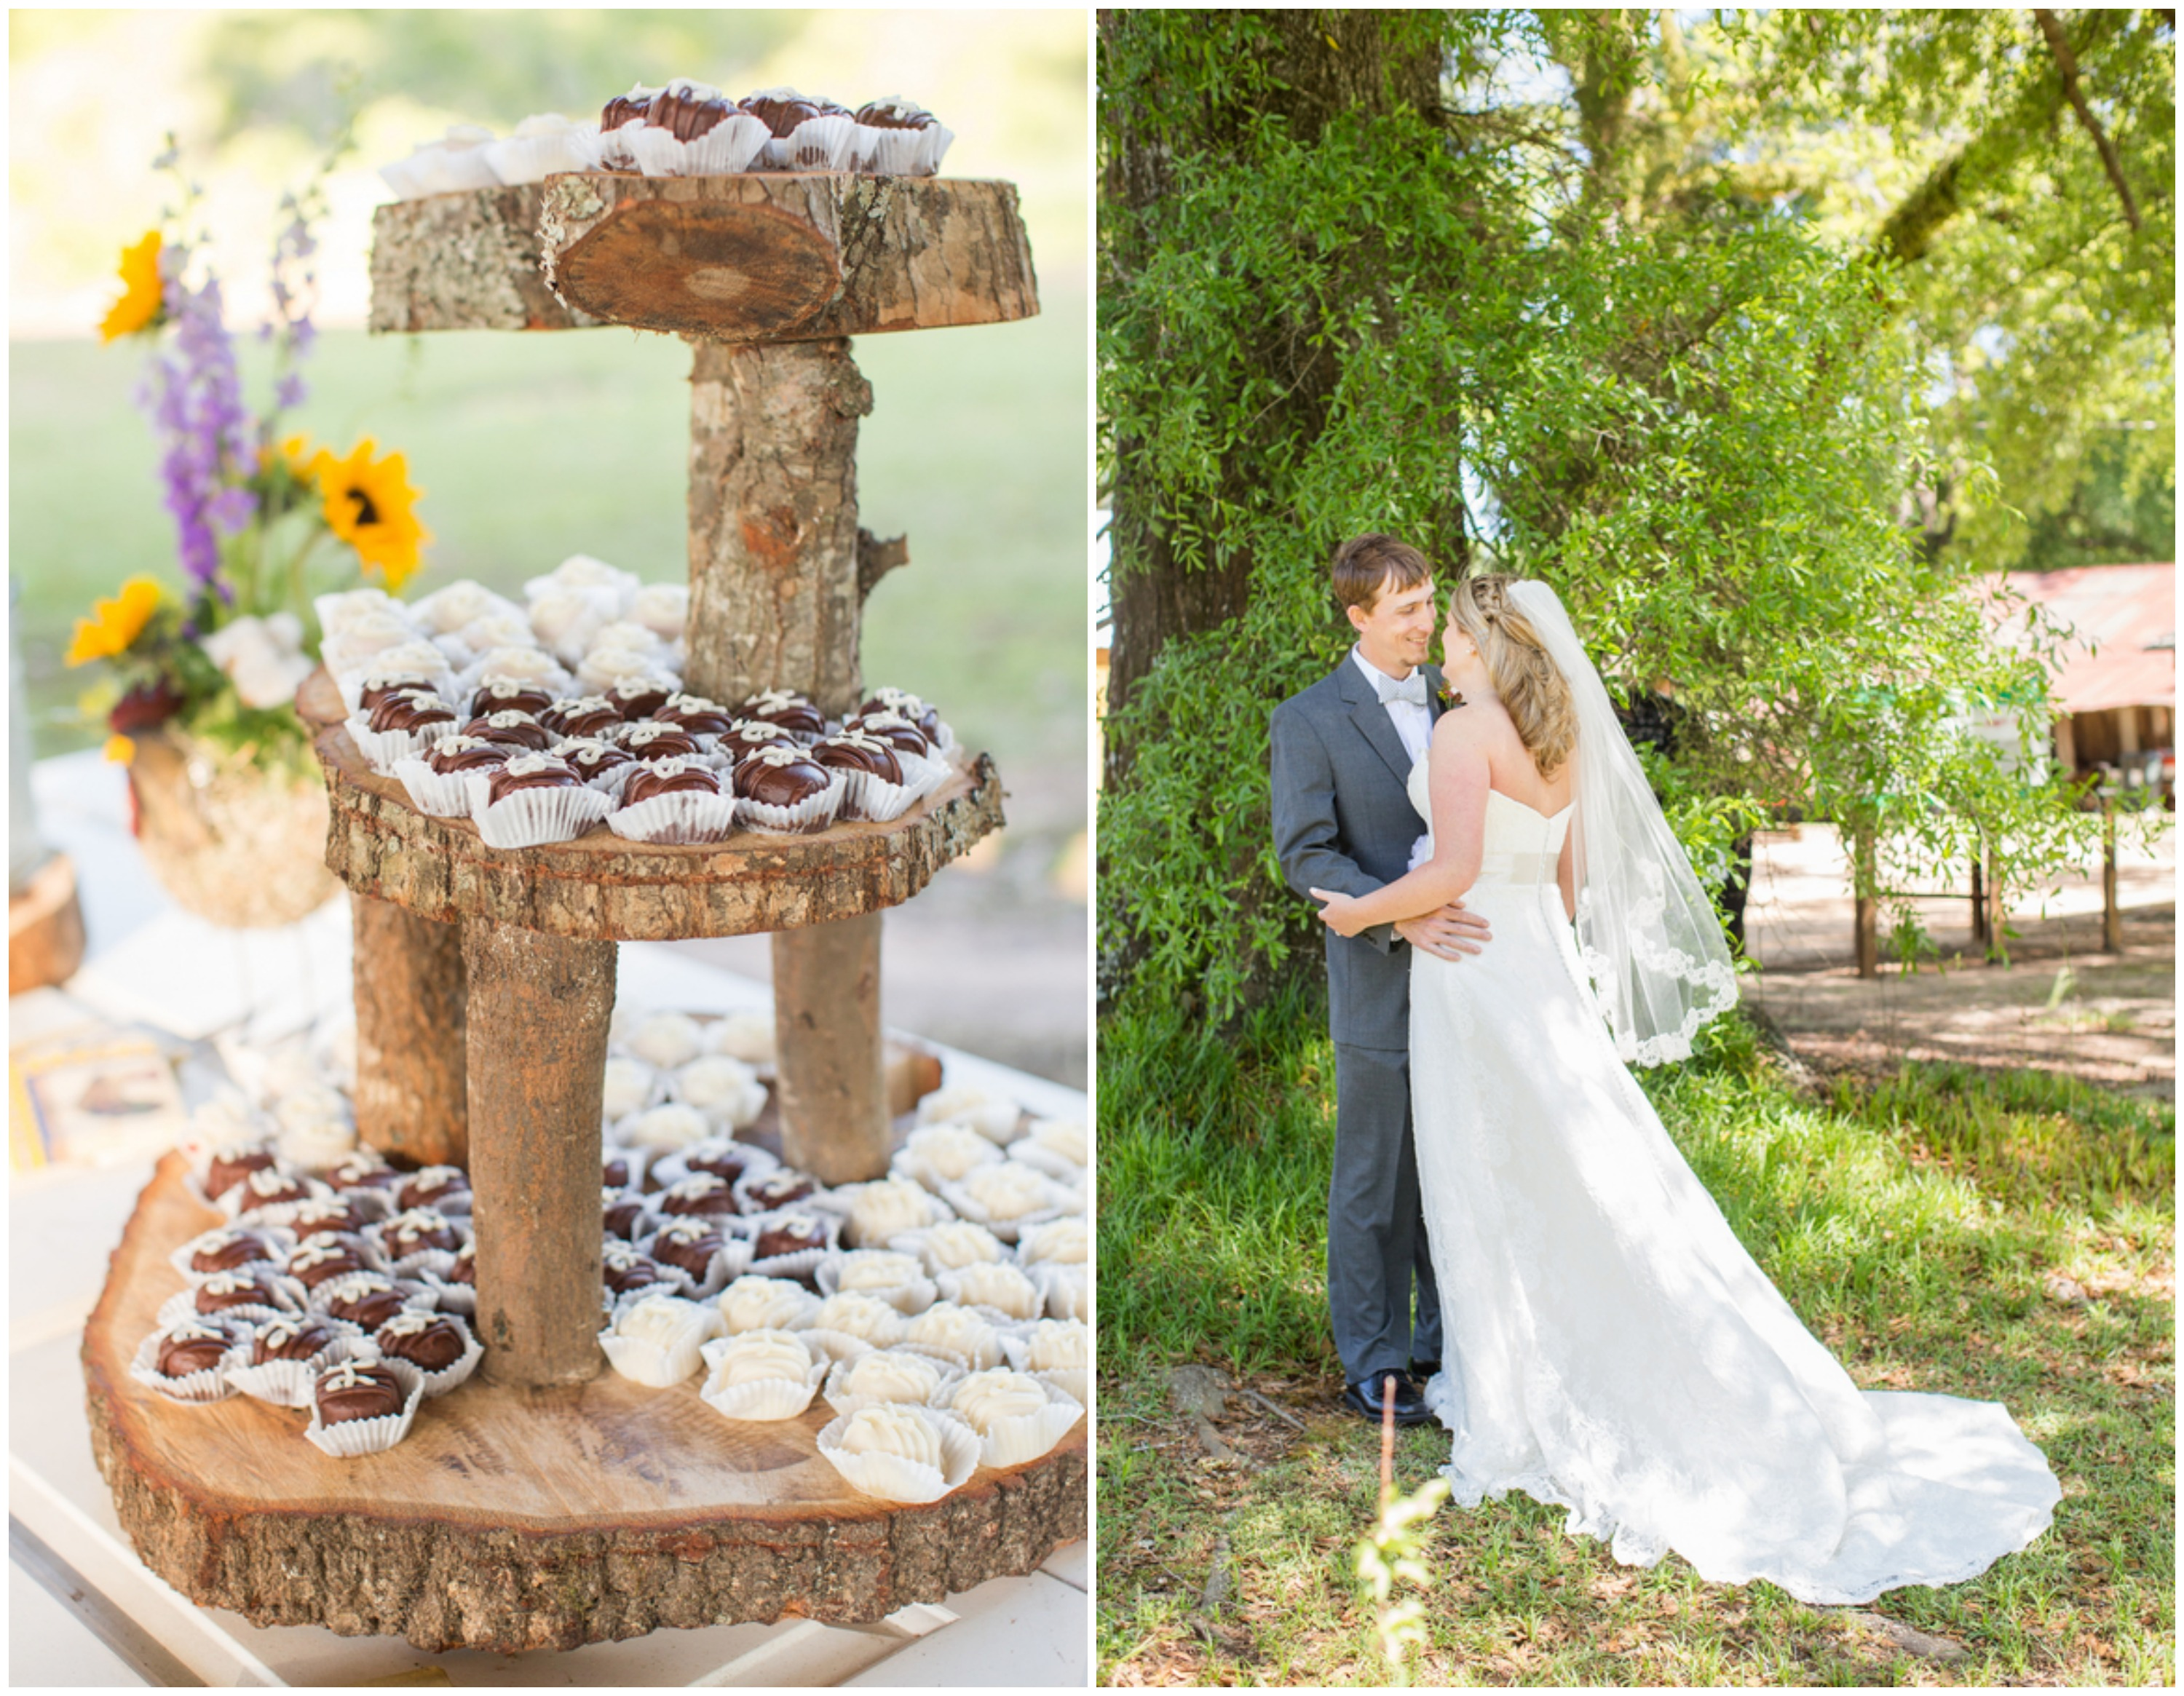 Wedding On A Family Farm - Rustic Wedding Chic - photo#7